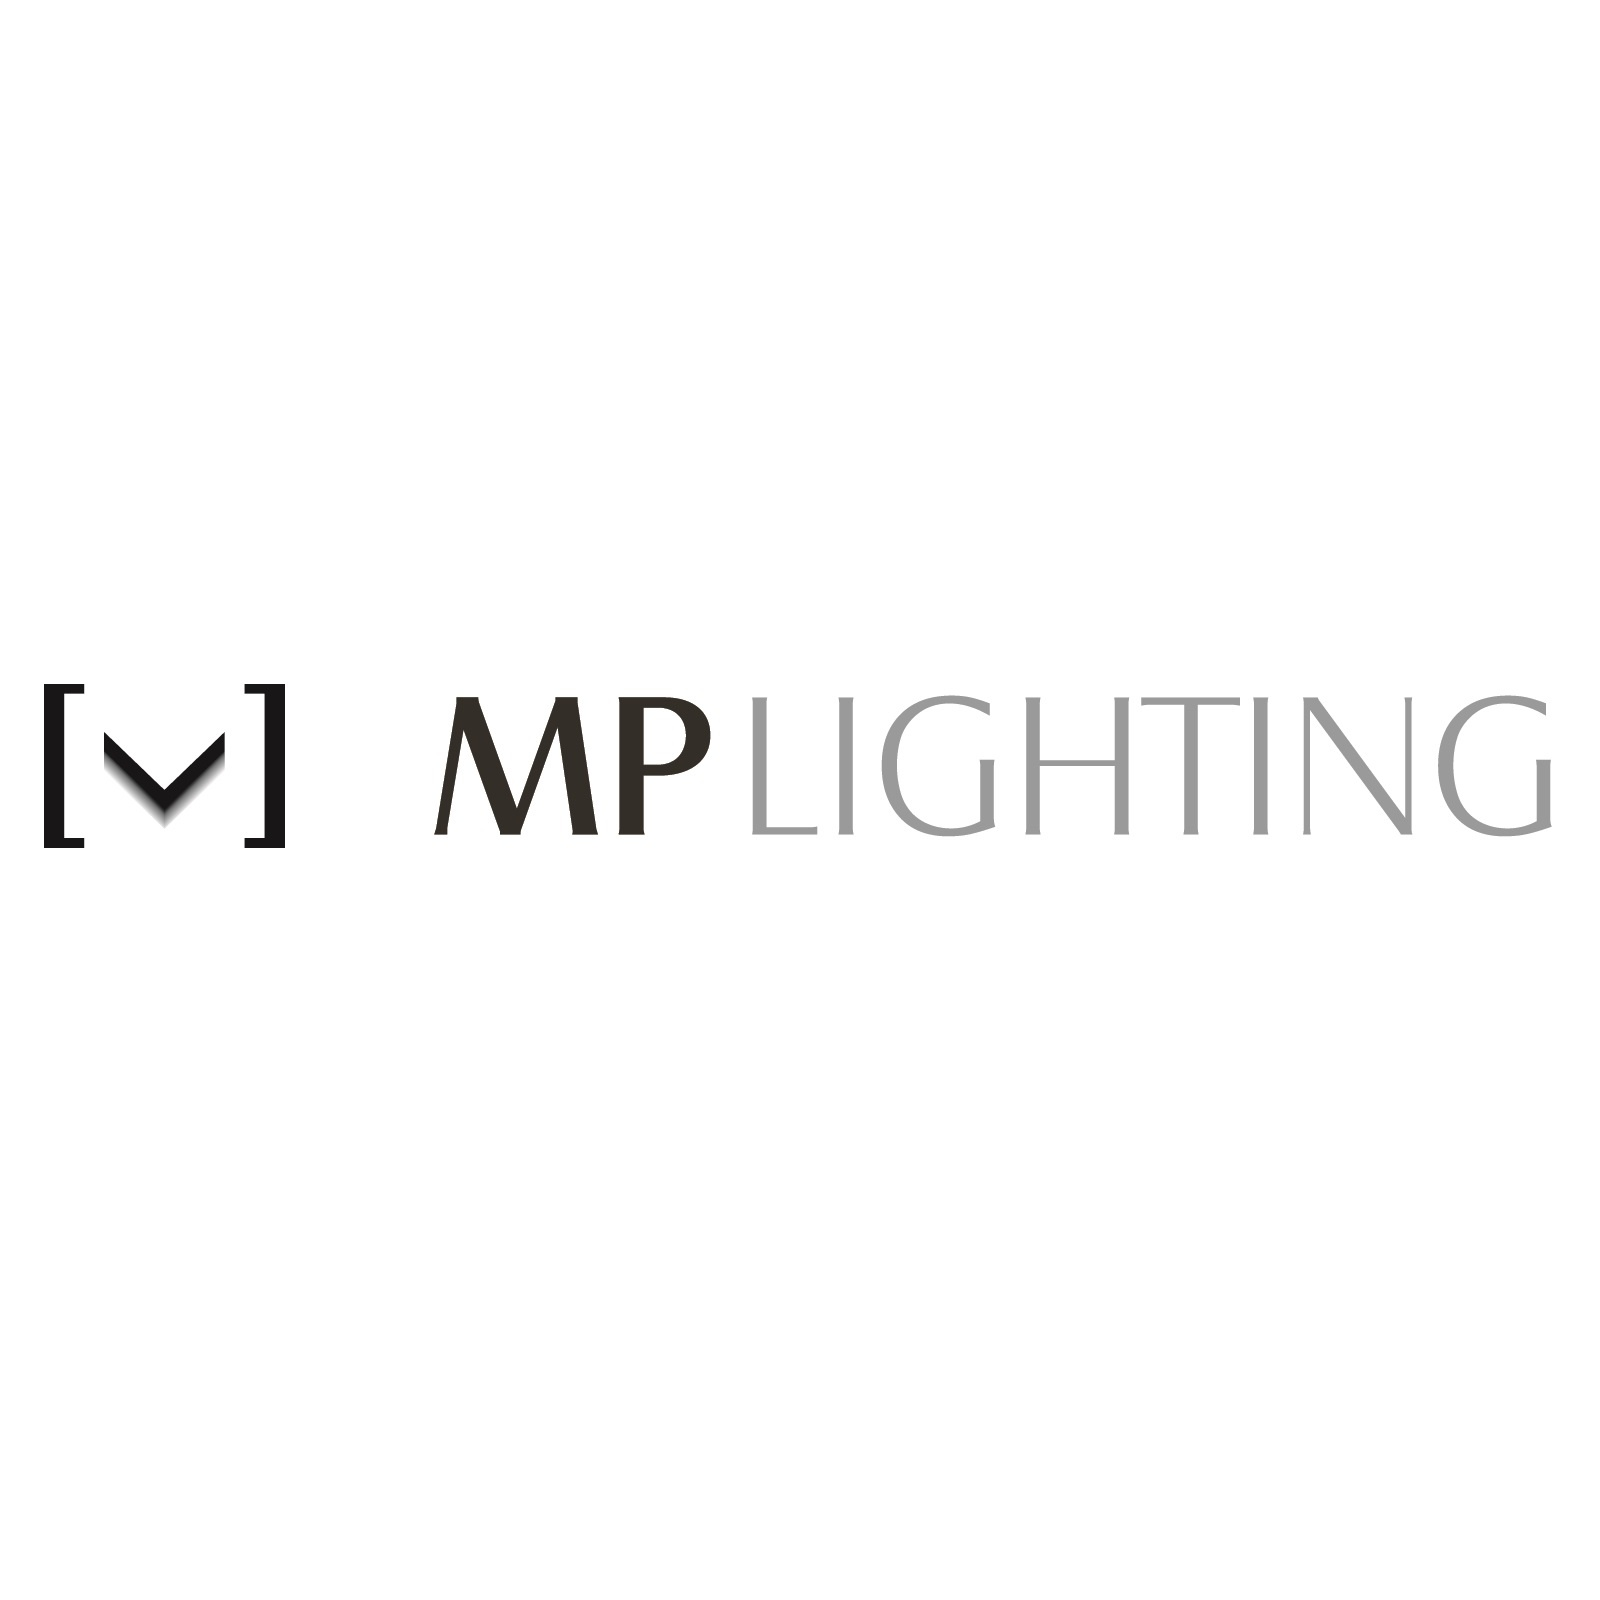 MP Lighting